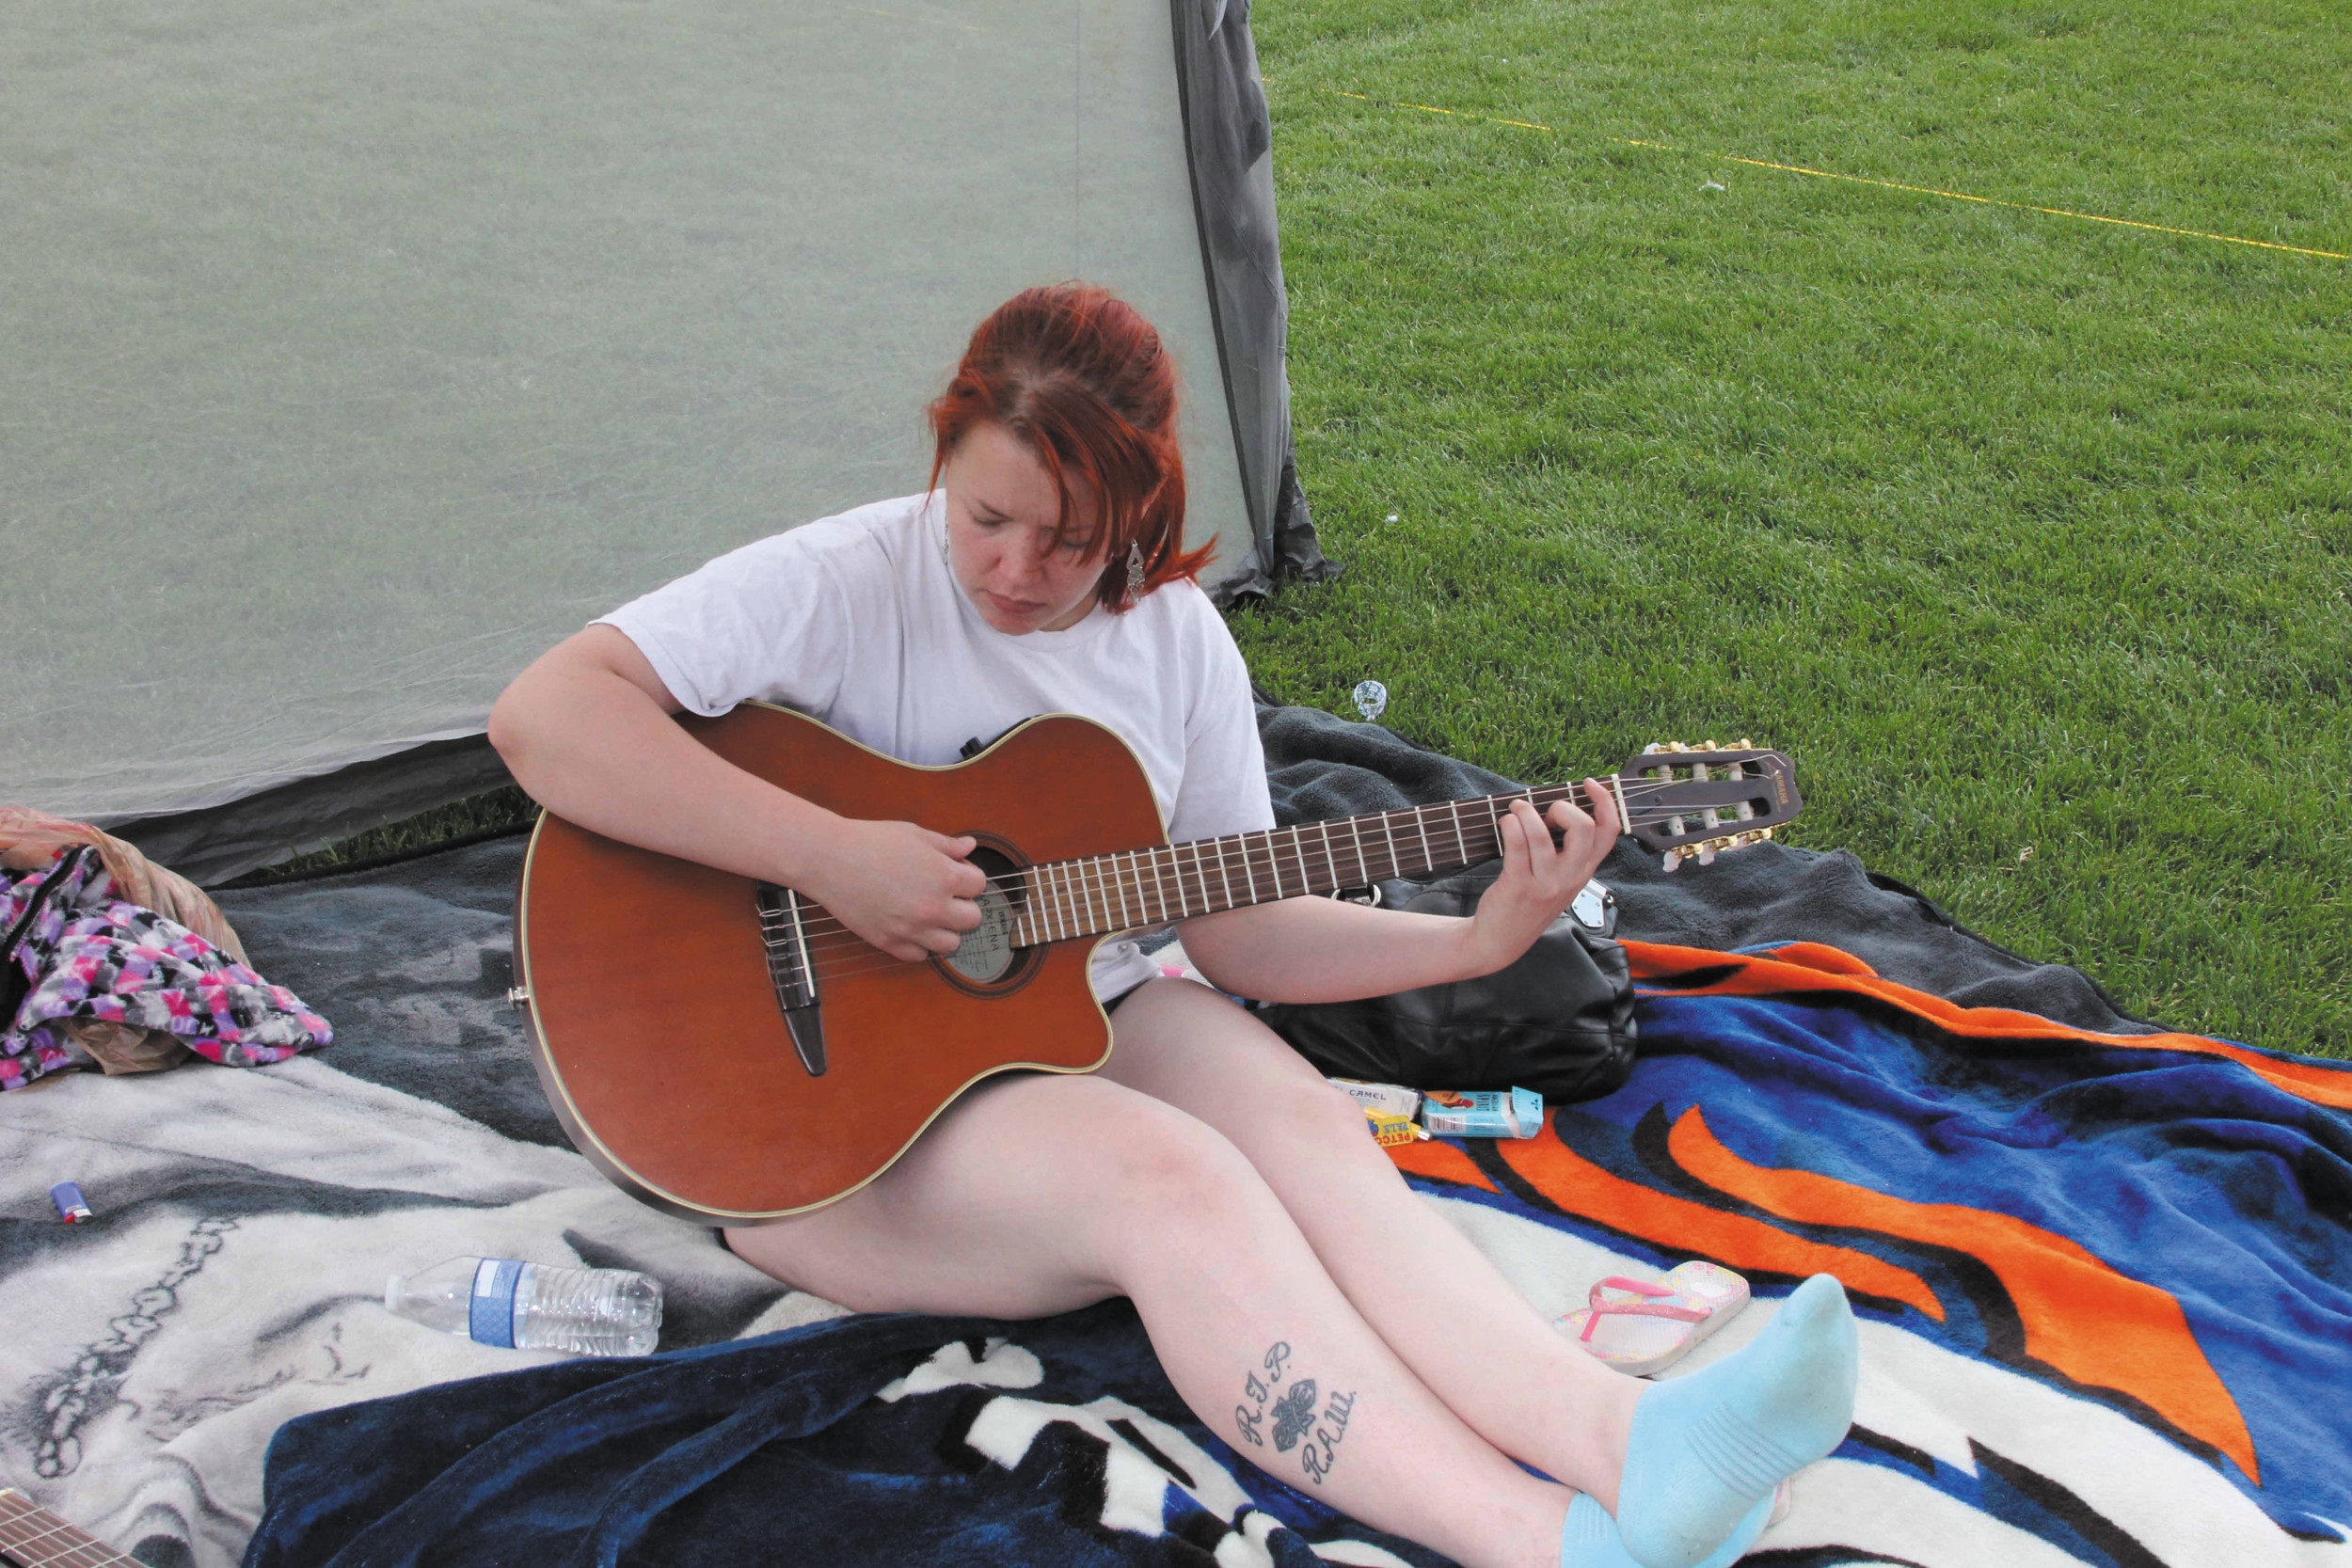 Monica Patton hums and plays her guitar as she takes a break from the other activities at the July 4 Family Fun and Fireworks Event at Cornerstone and Belleview parks. She said she likes to be outside and just play her guitar for her own enjoyment and even occasionally write a song or two.